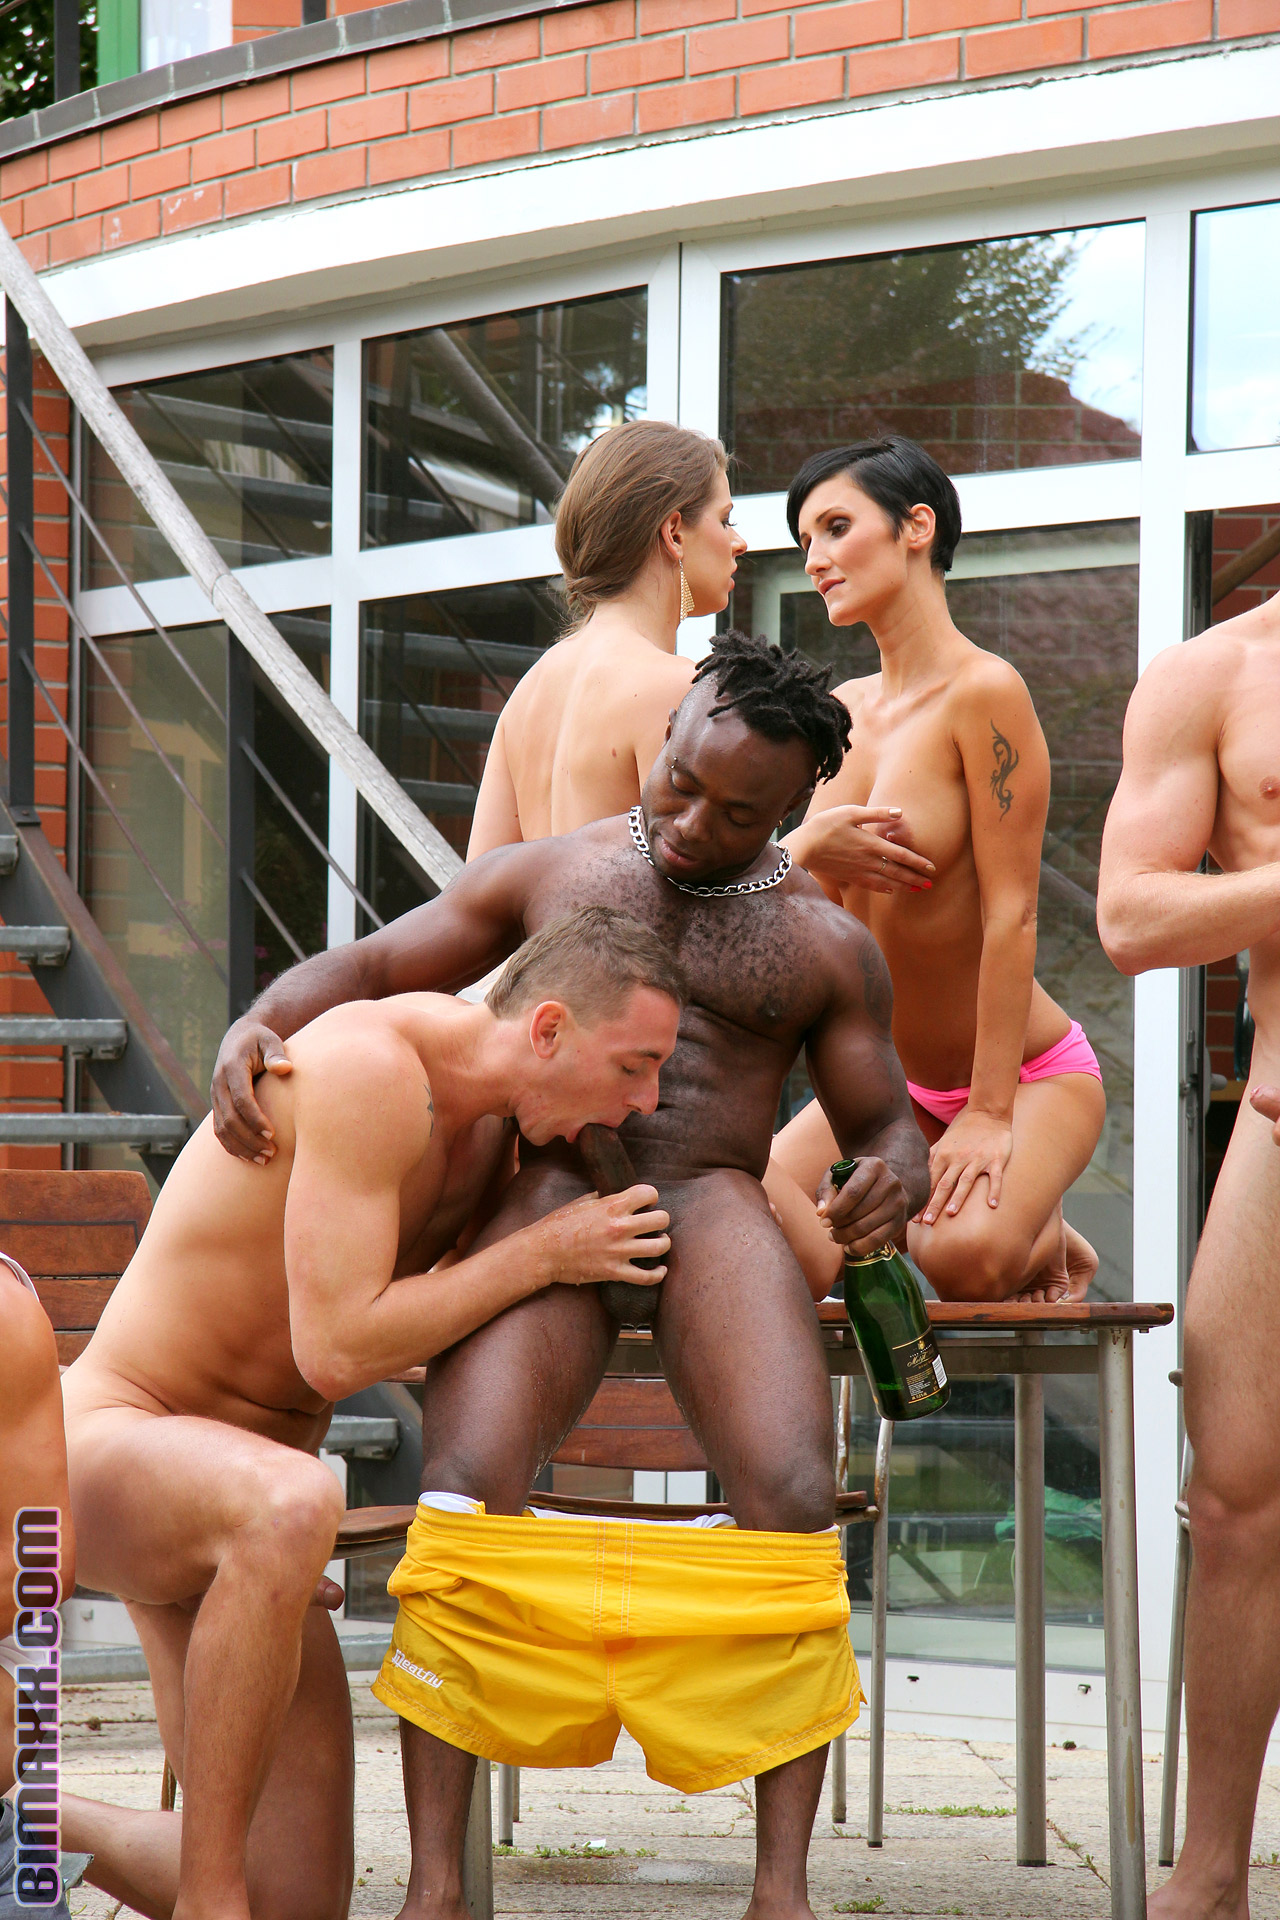 Outdoor Orgy MMF 2/3